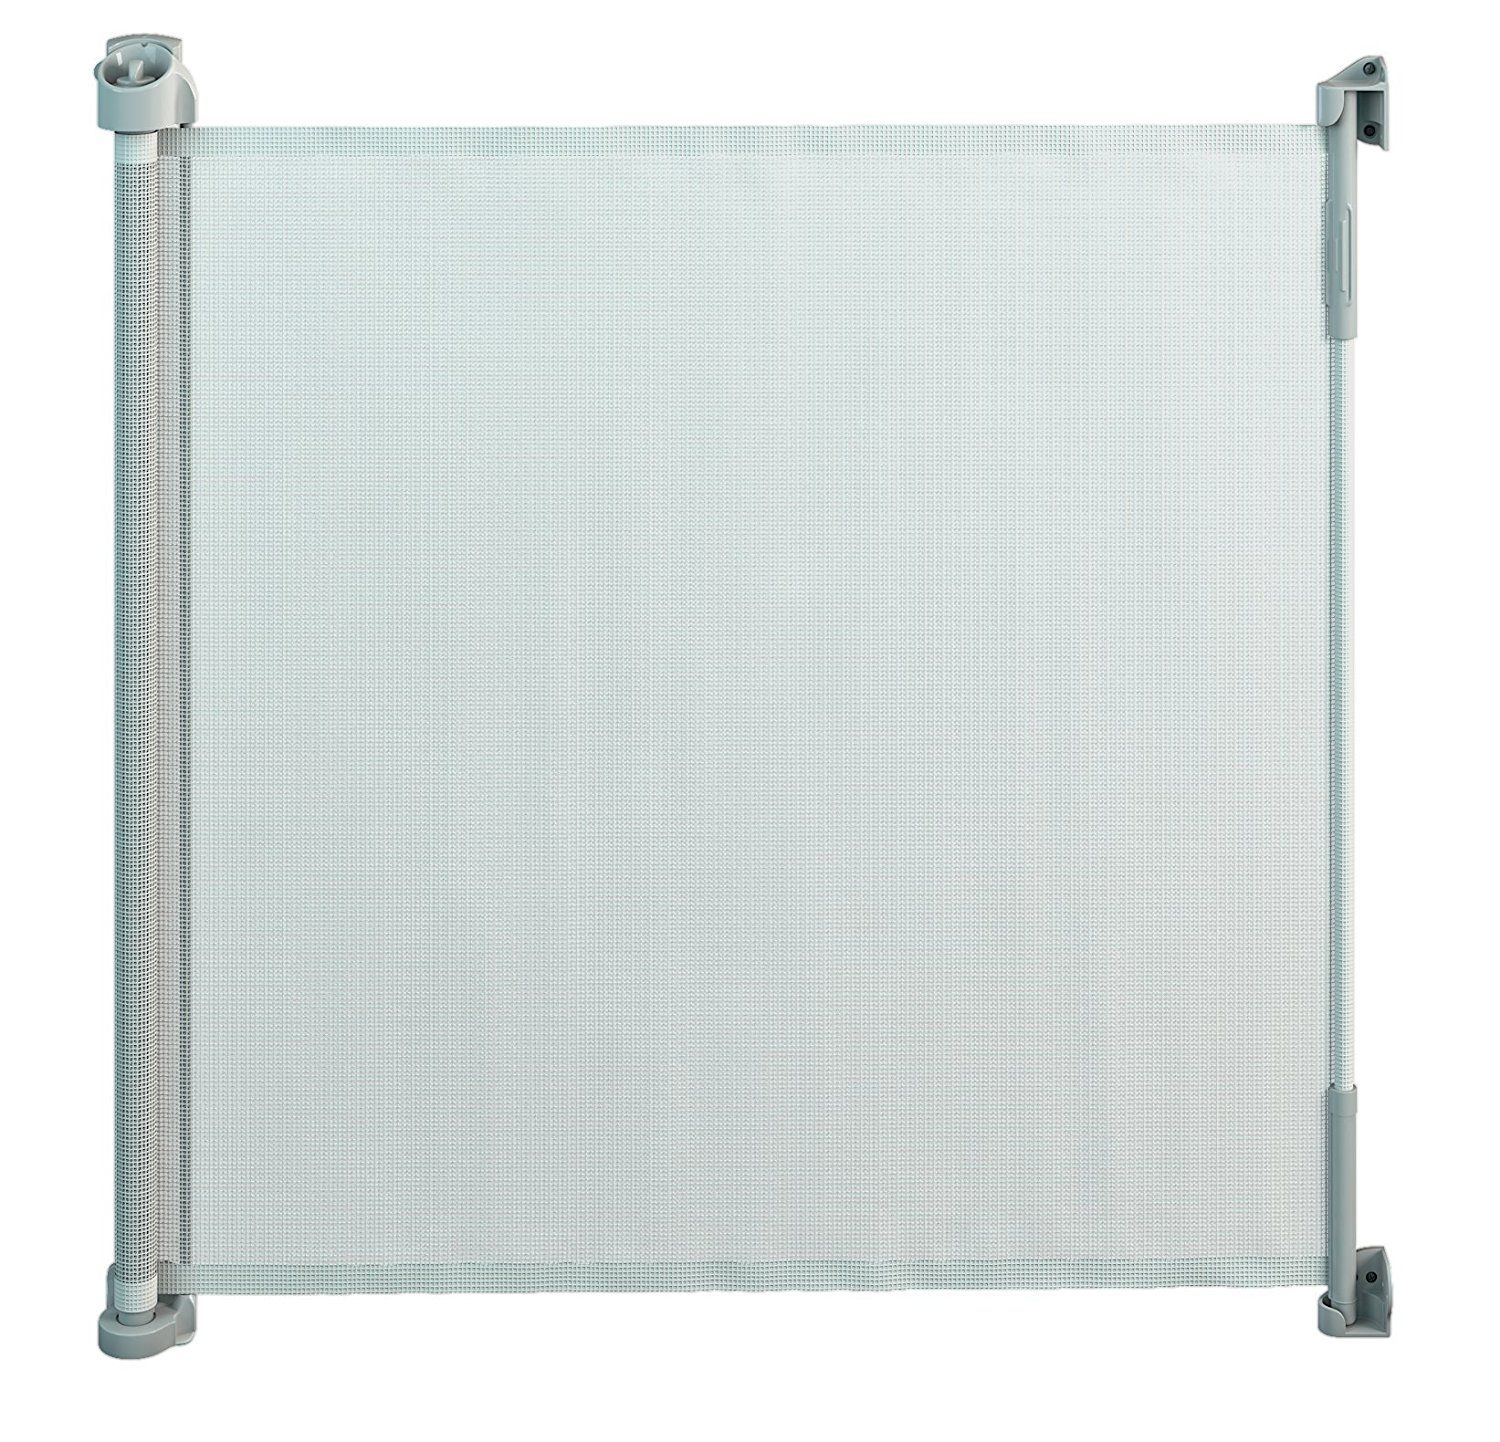 Gaterol Active Lite White Retractable Safety Gate